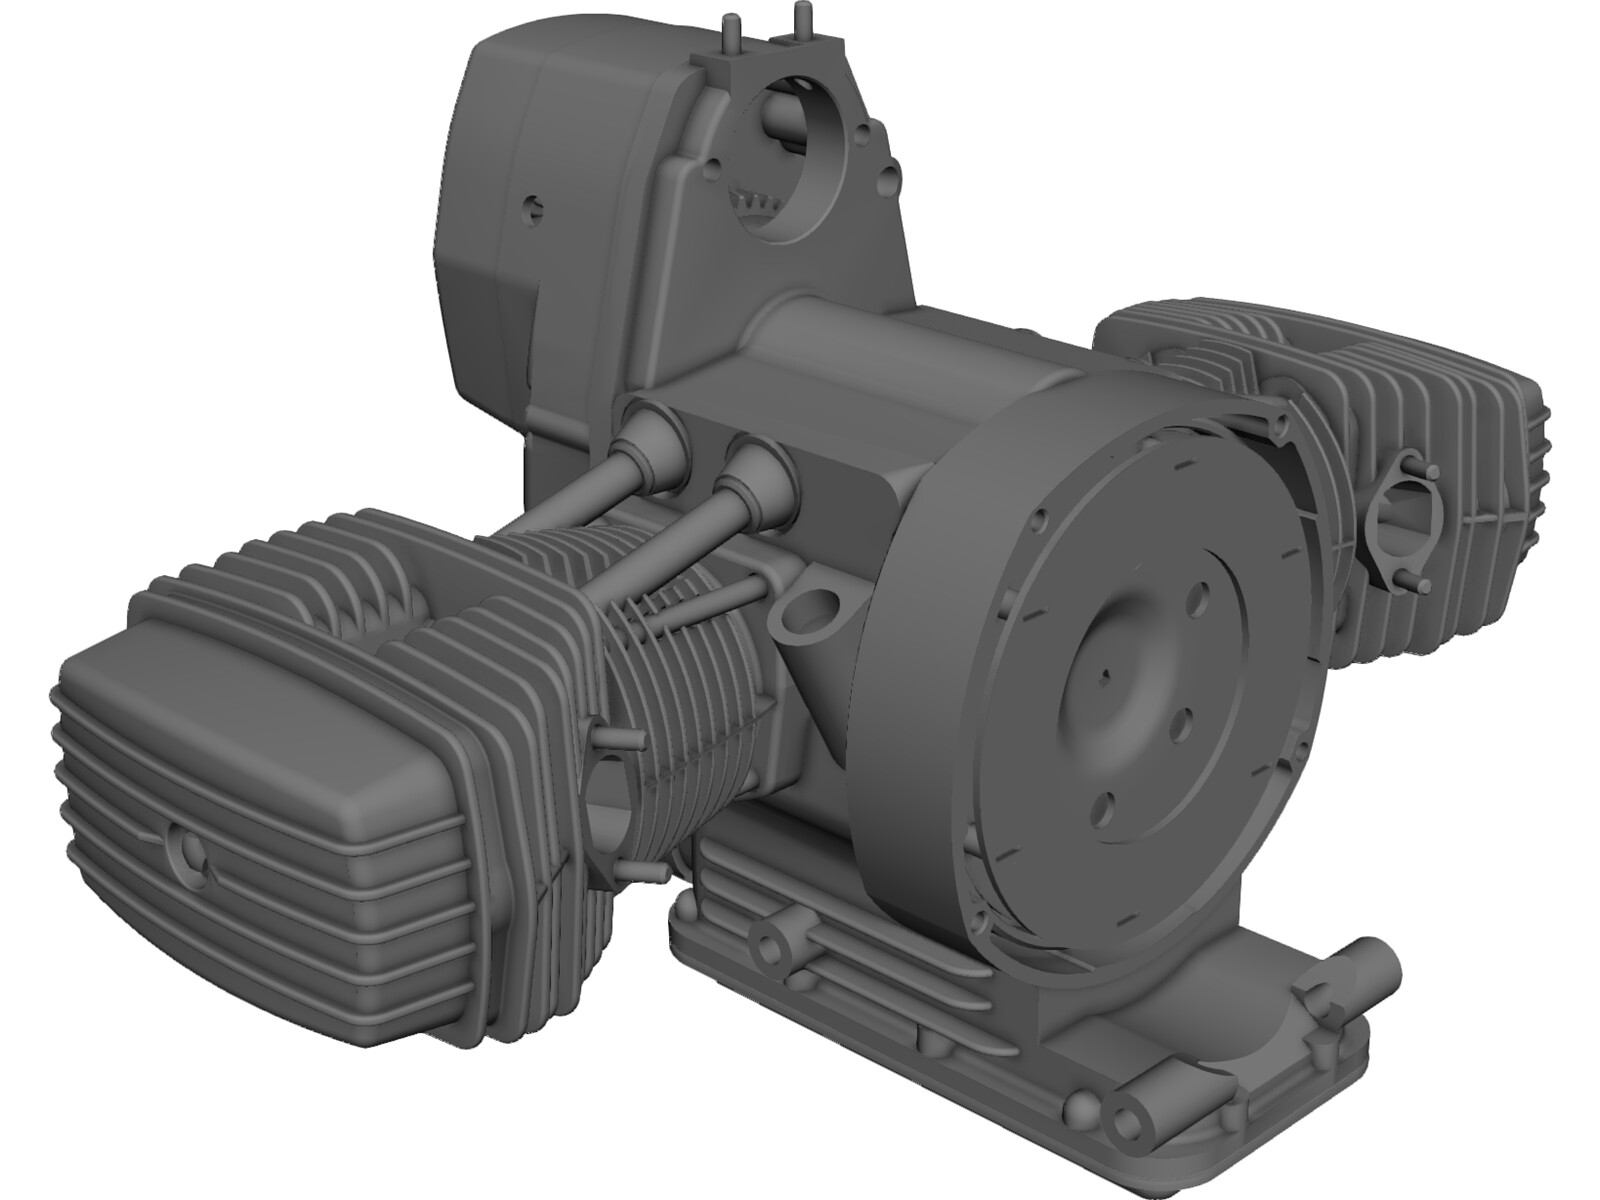 Dnepr Motorcycle Engine 3D Model